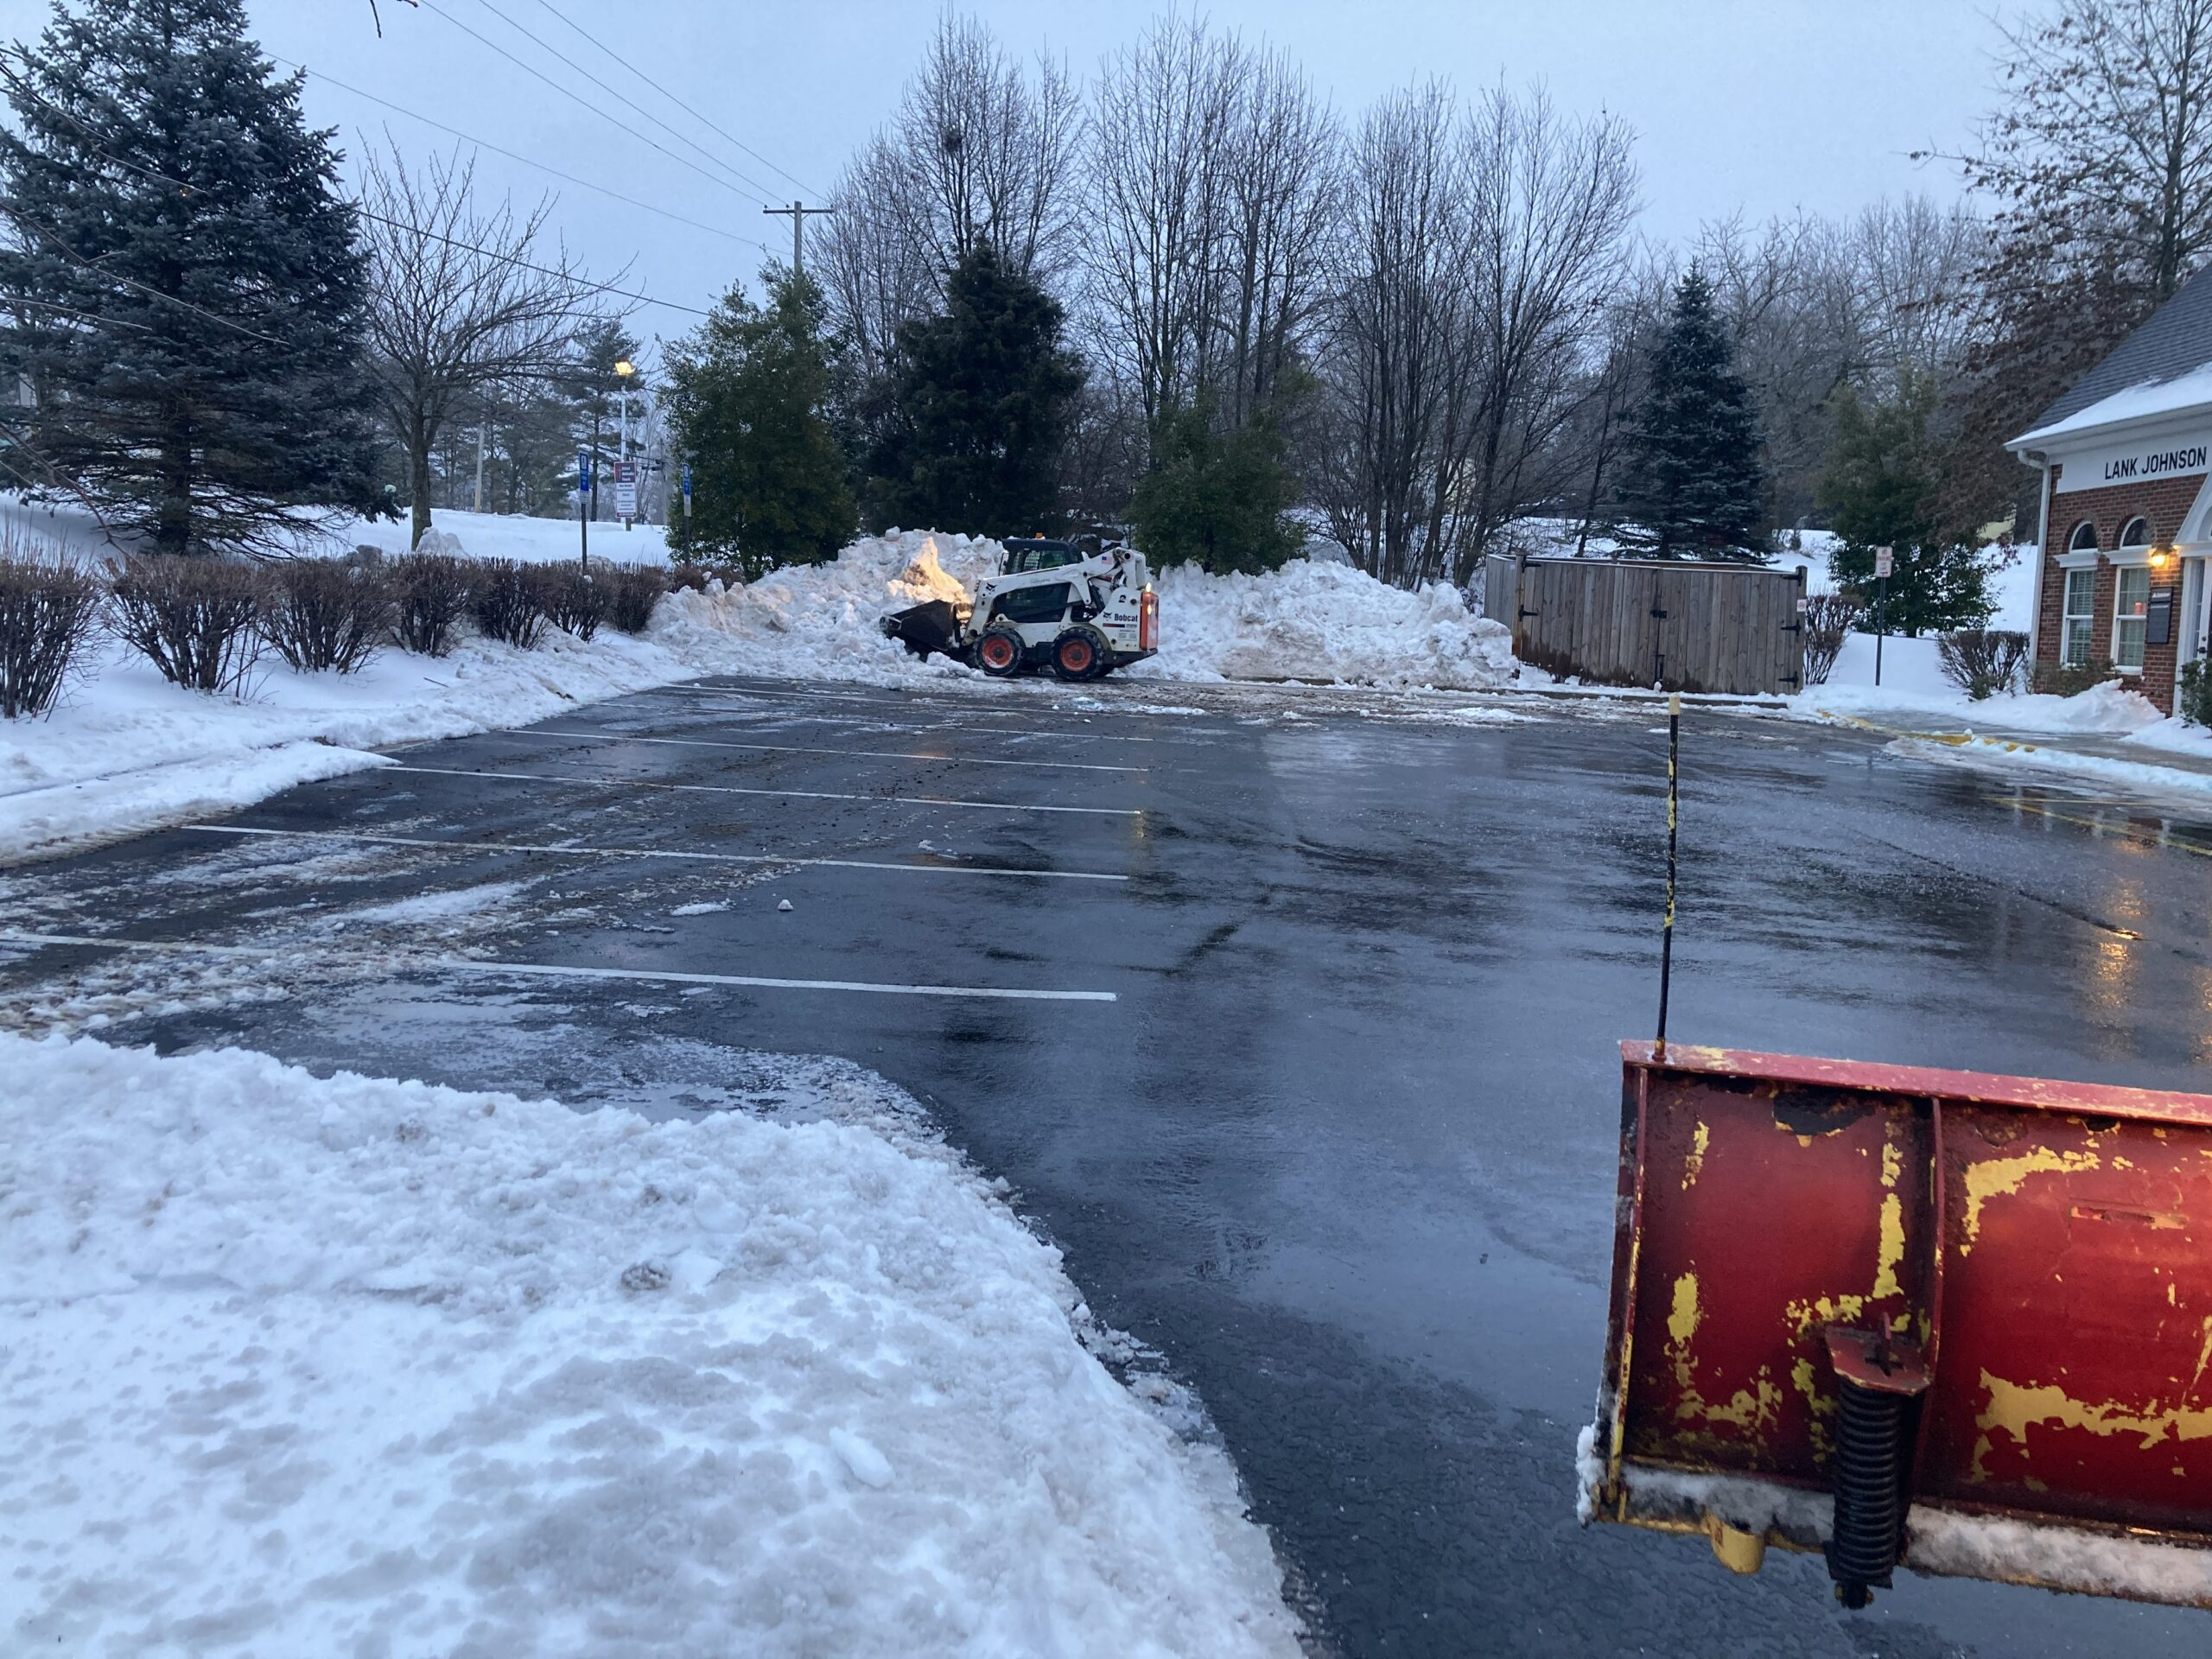 Snow being removed from commercial parking lot by bobcat machine